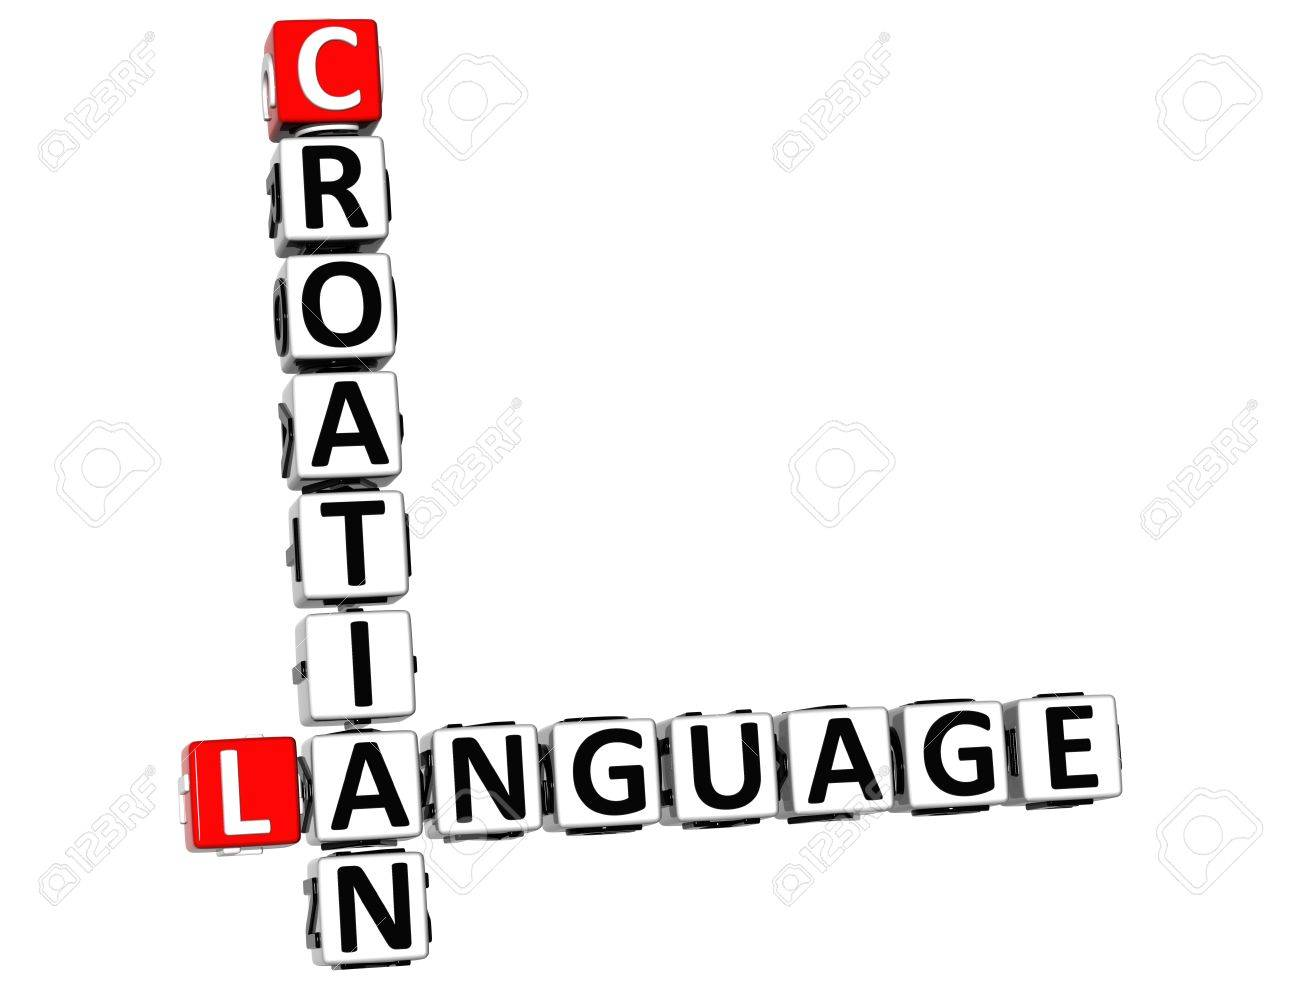 3D Croatian Language Crossword On White Background Stock Photo ...